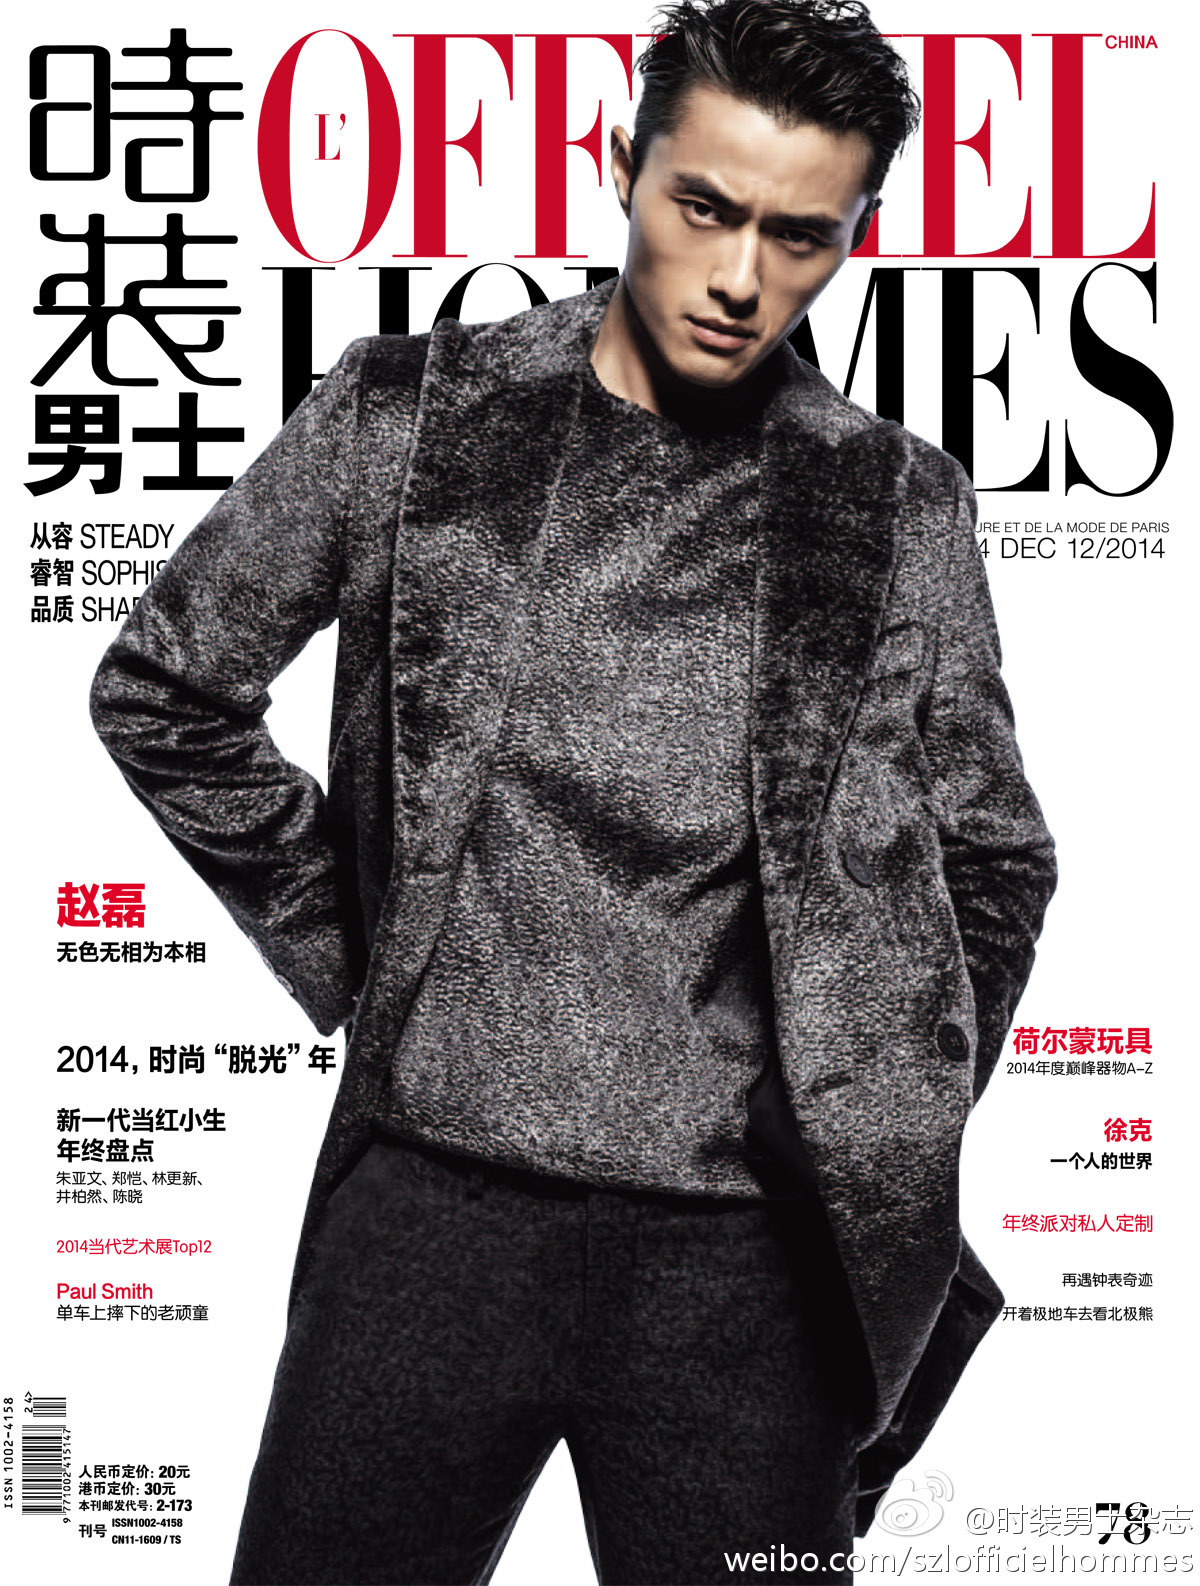 L'Officiel Hommes China November 2014: Zhao Lei by Zhang Xi